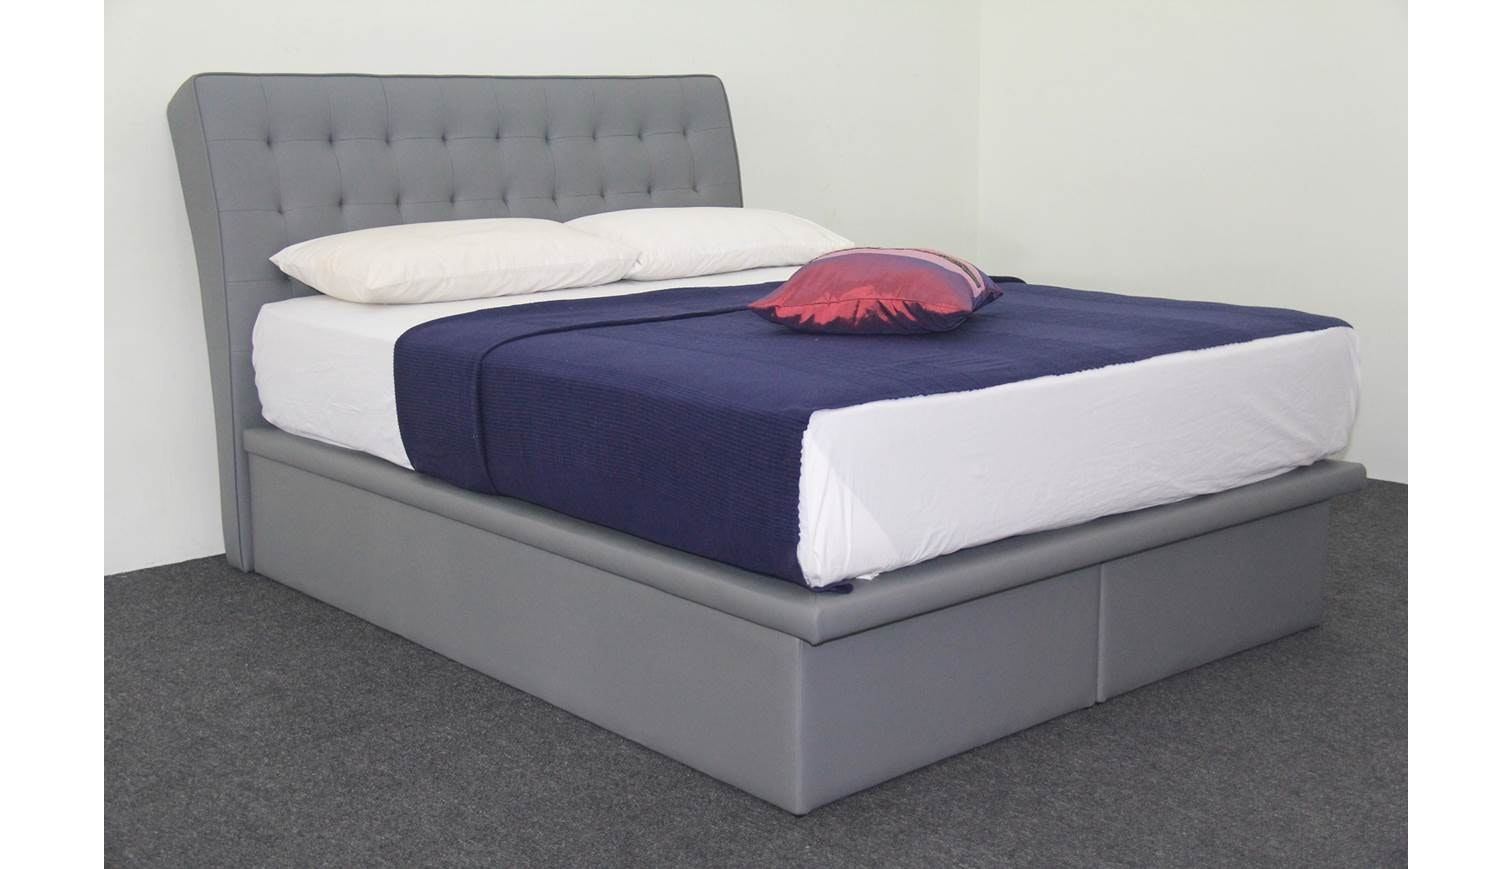 Bed Frame Bed Heads Double Bed Queen Size Bed Twin Bed Harvey